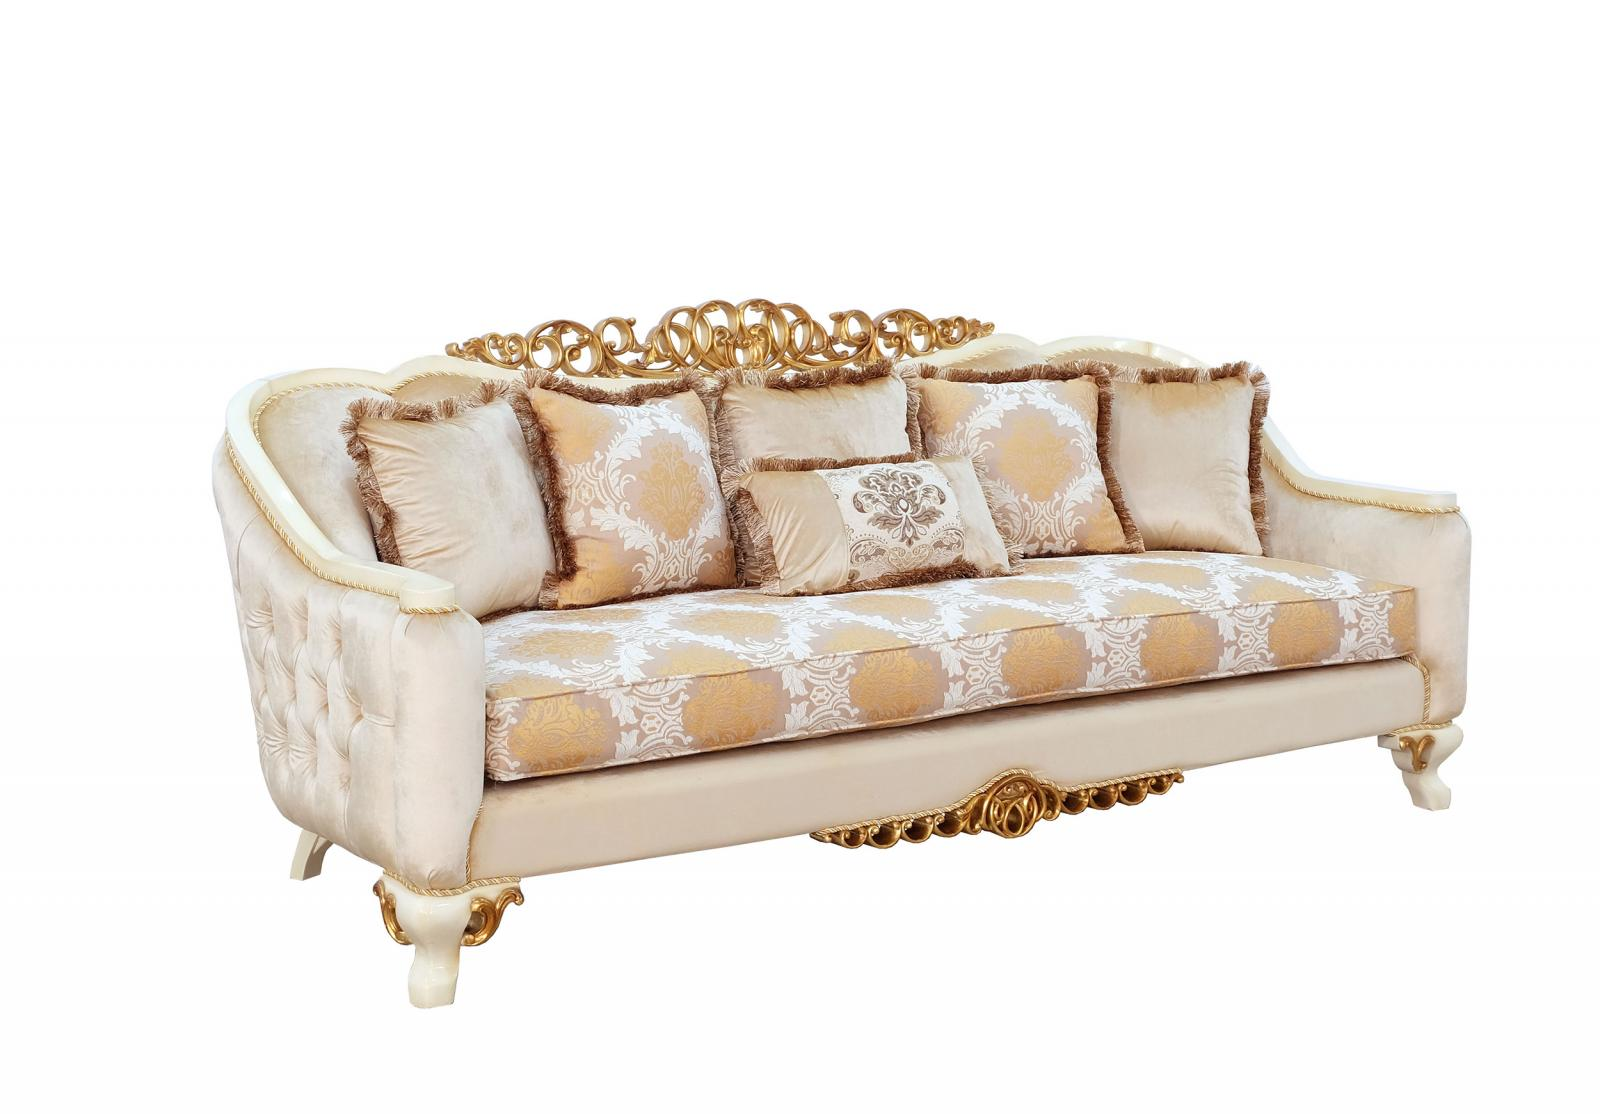 Classic  Traditional Beige  Gold  Antique Wood  Solid Hardwood and Fabric Sofa EUROPEAN FURNITURE 45352-S